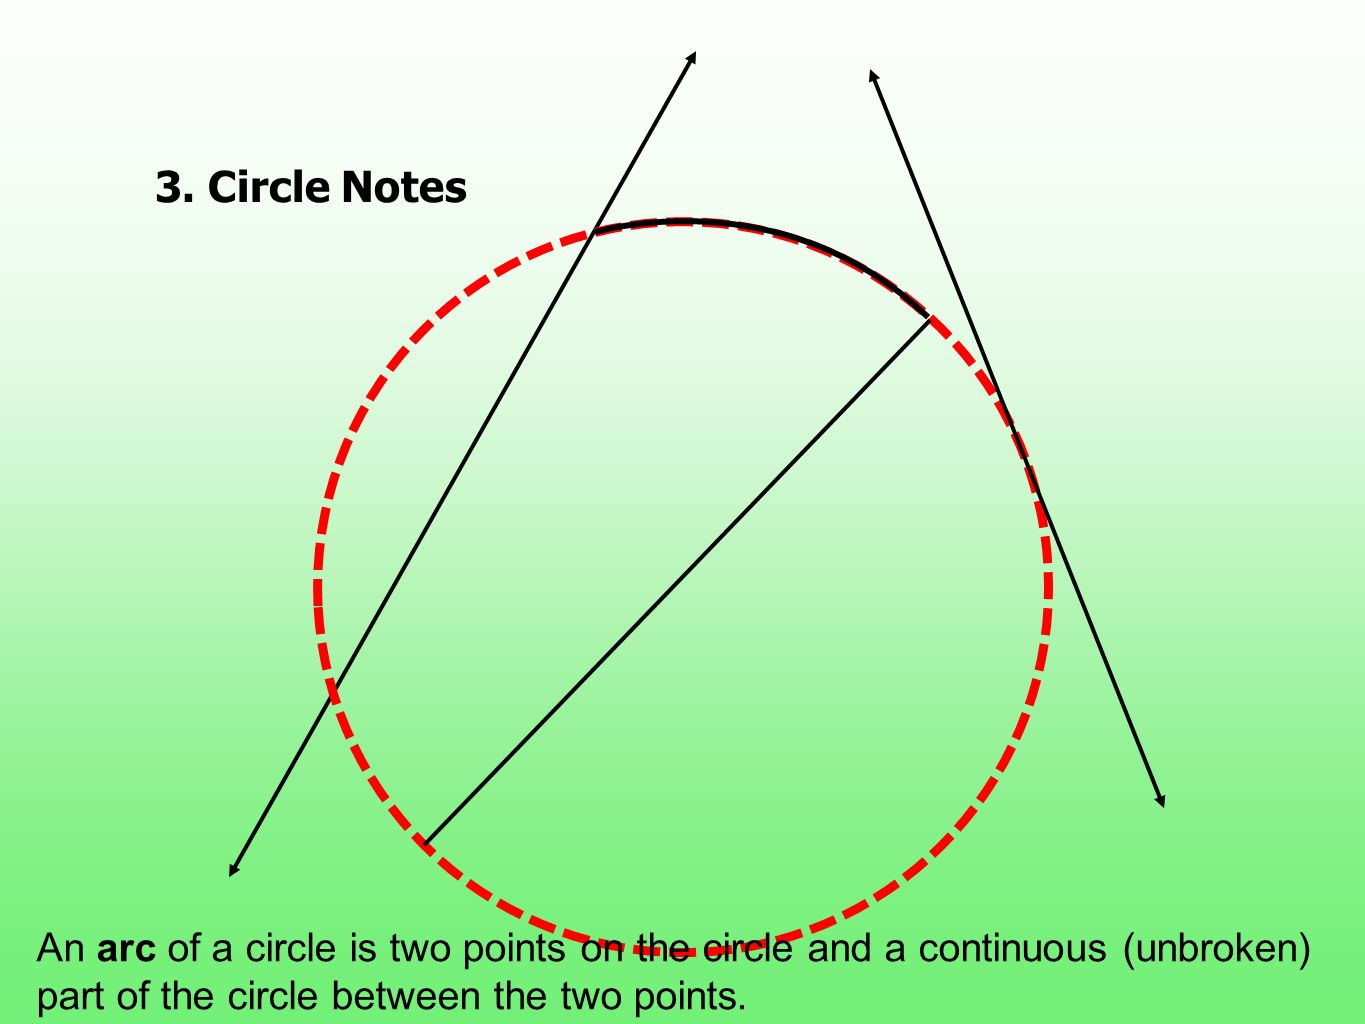 3. Circle Notes An arc of a circle is two points on the circle and a continuous (unbroken) part of the circle between the two points.